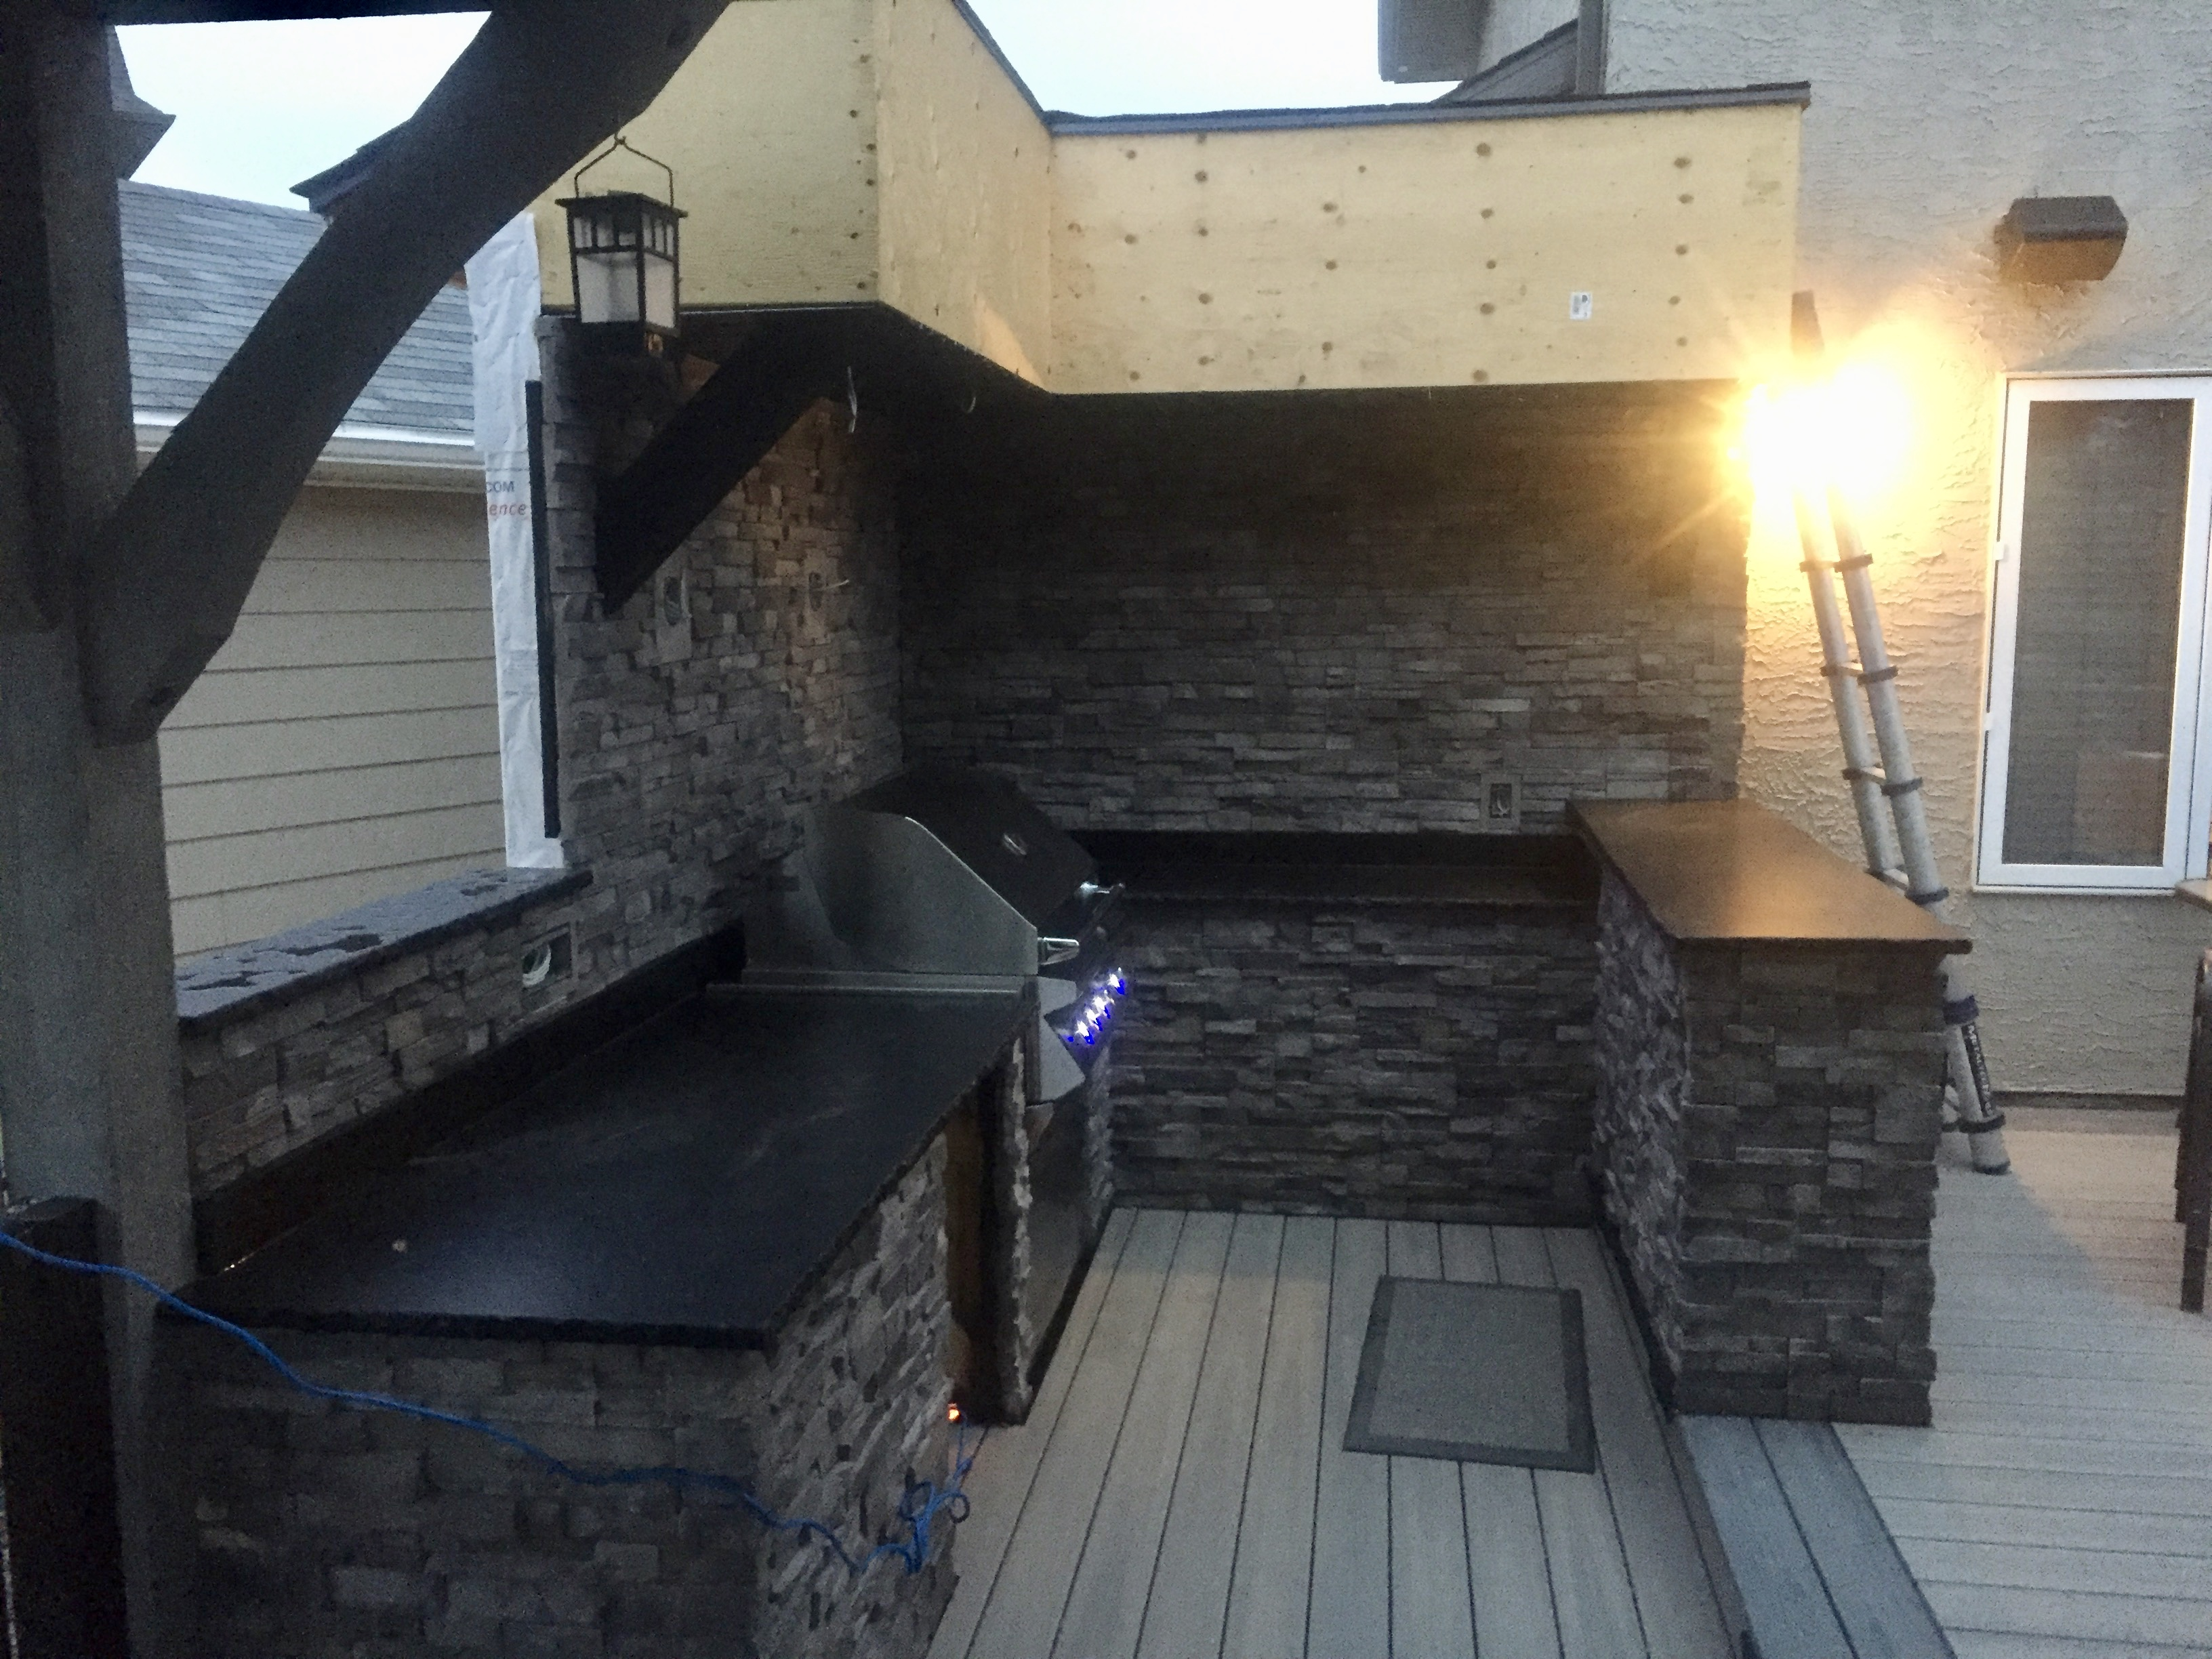 Outdoor BBQ area (in progress)